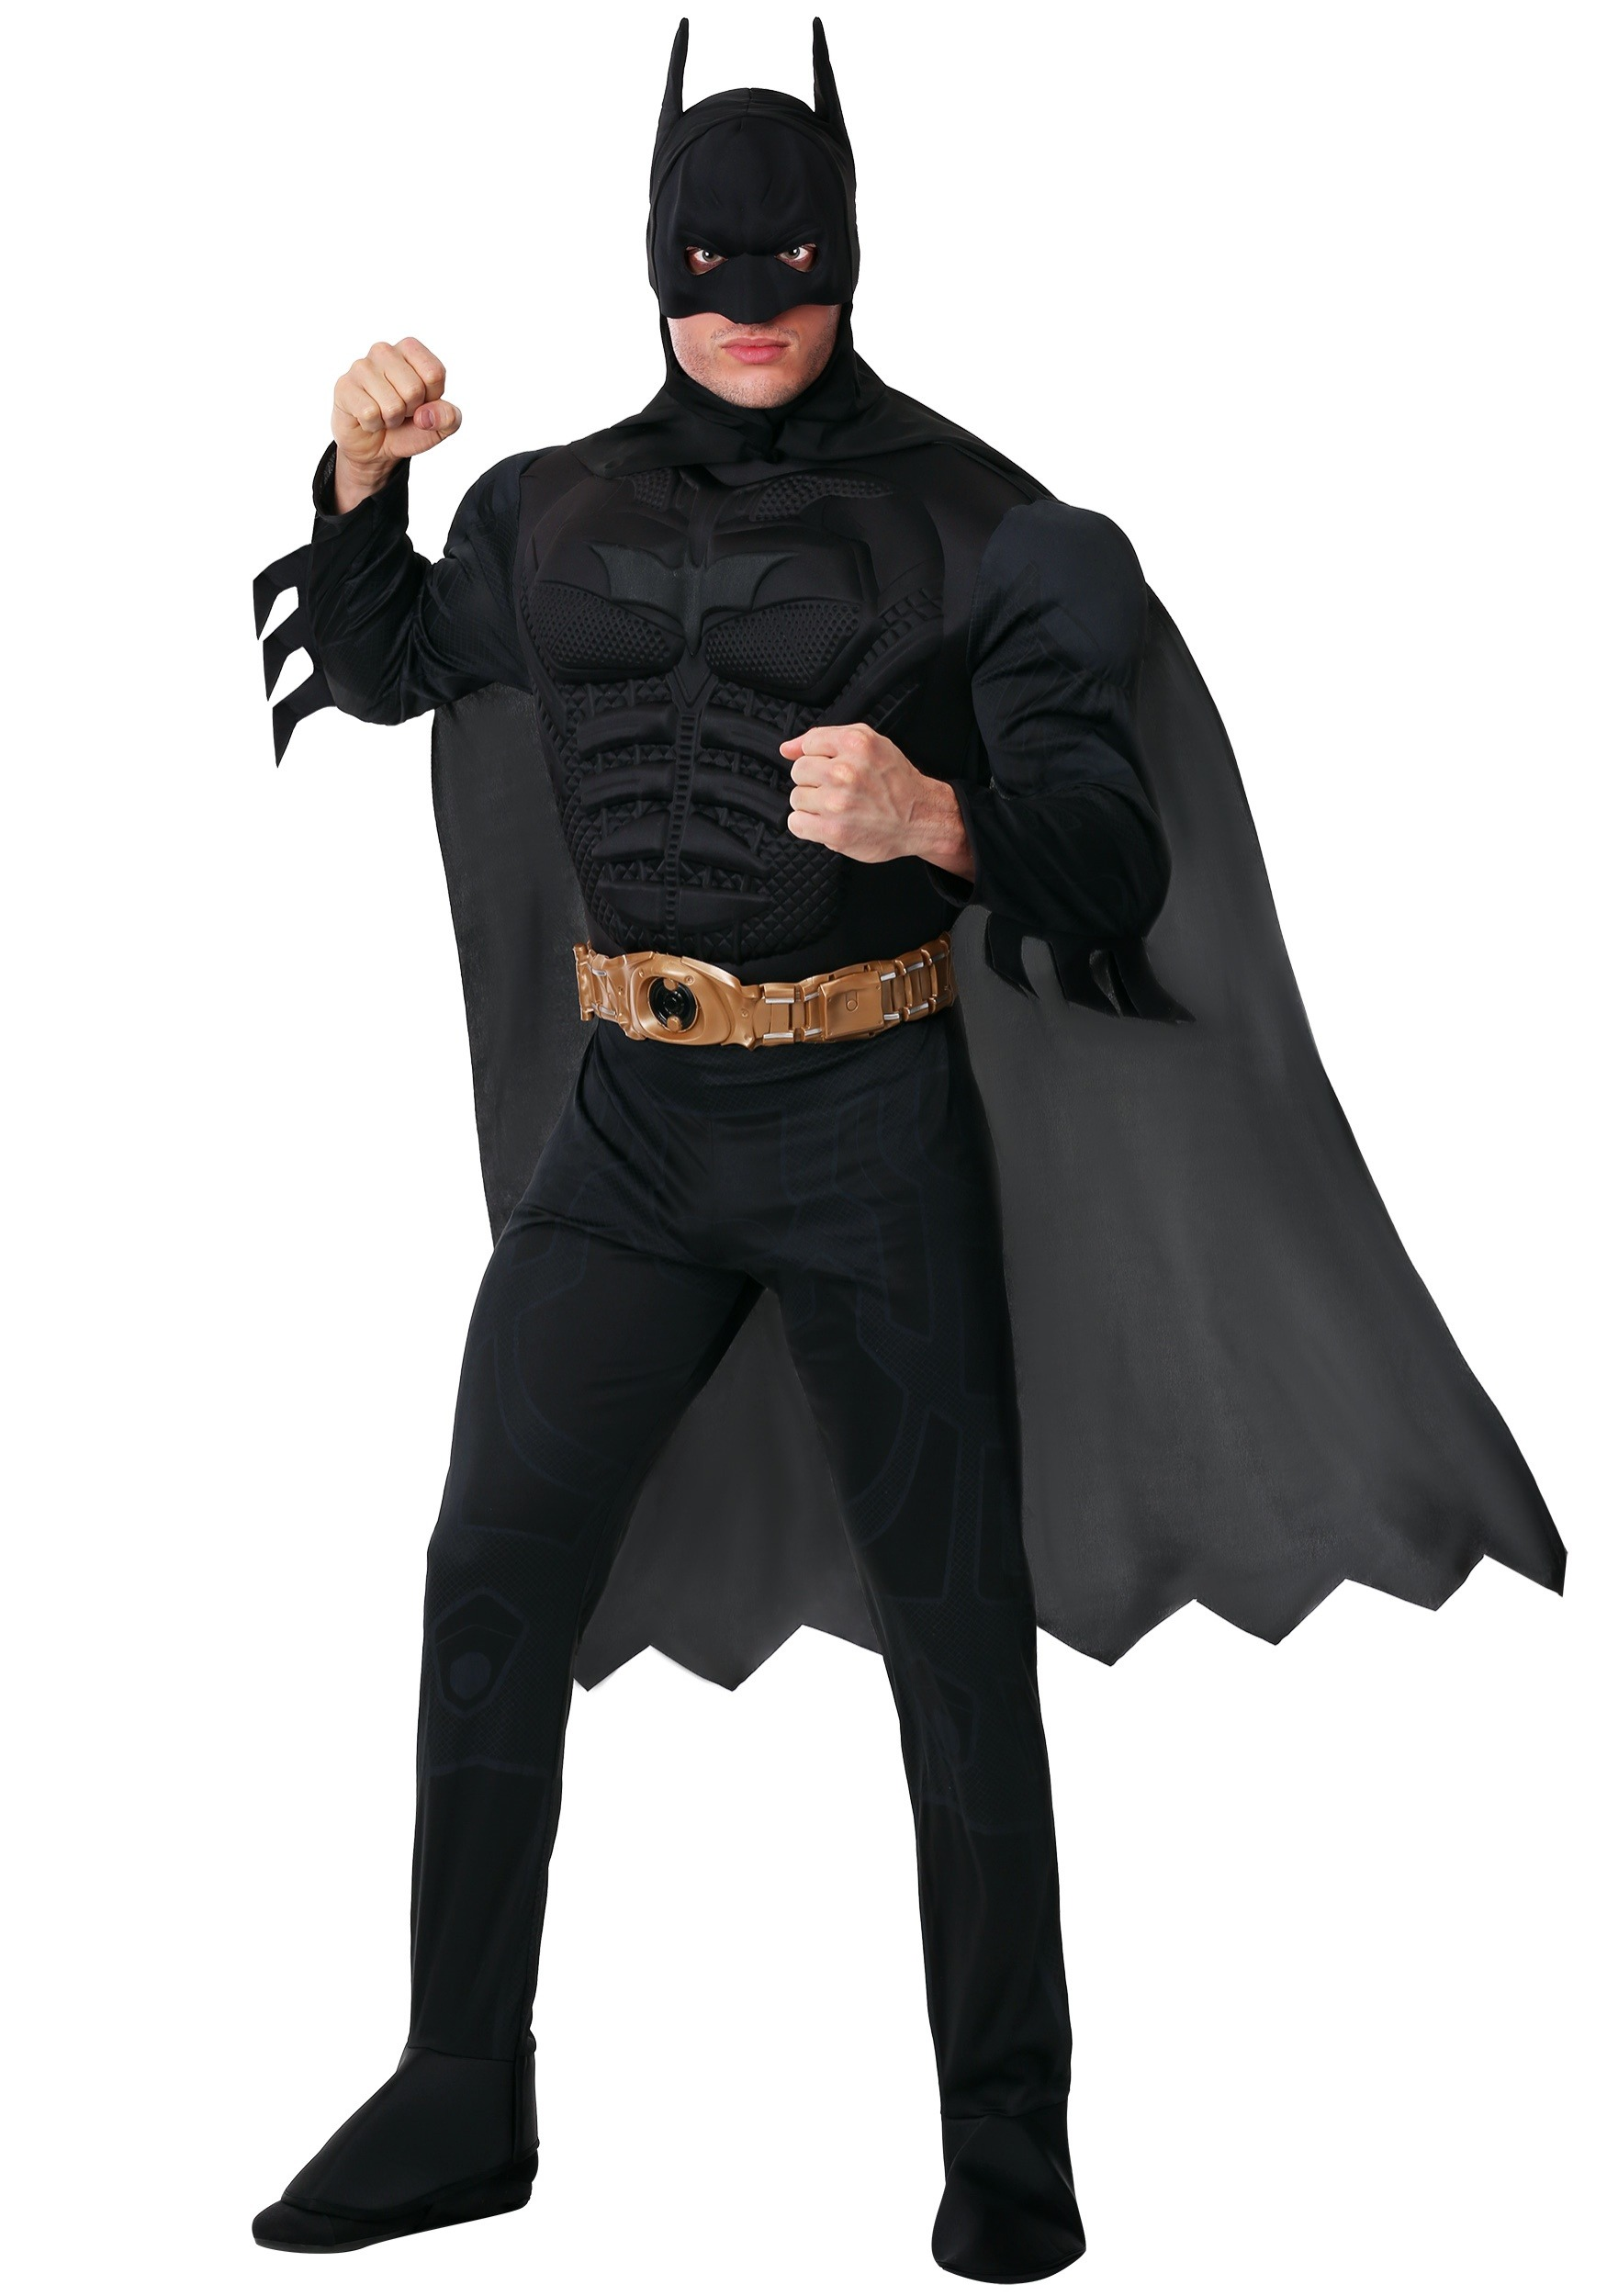 sc 1 st  Halloween Costumes & Adult Deluxe Dark Knight Batman Costume